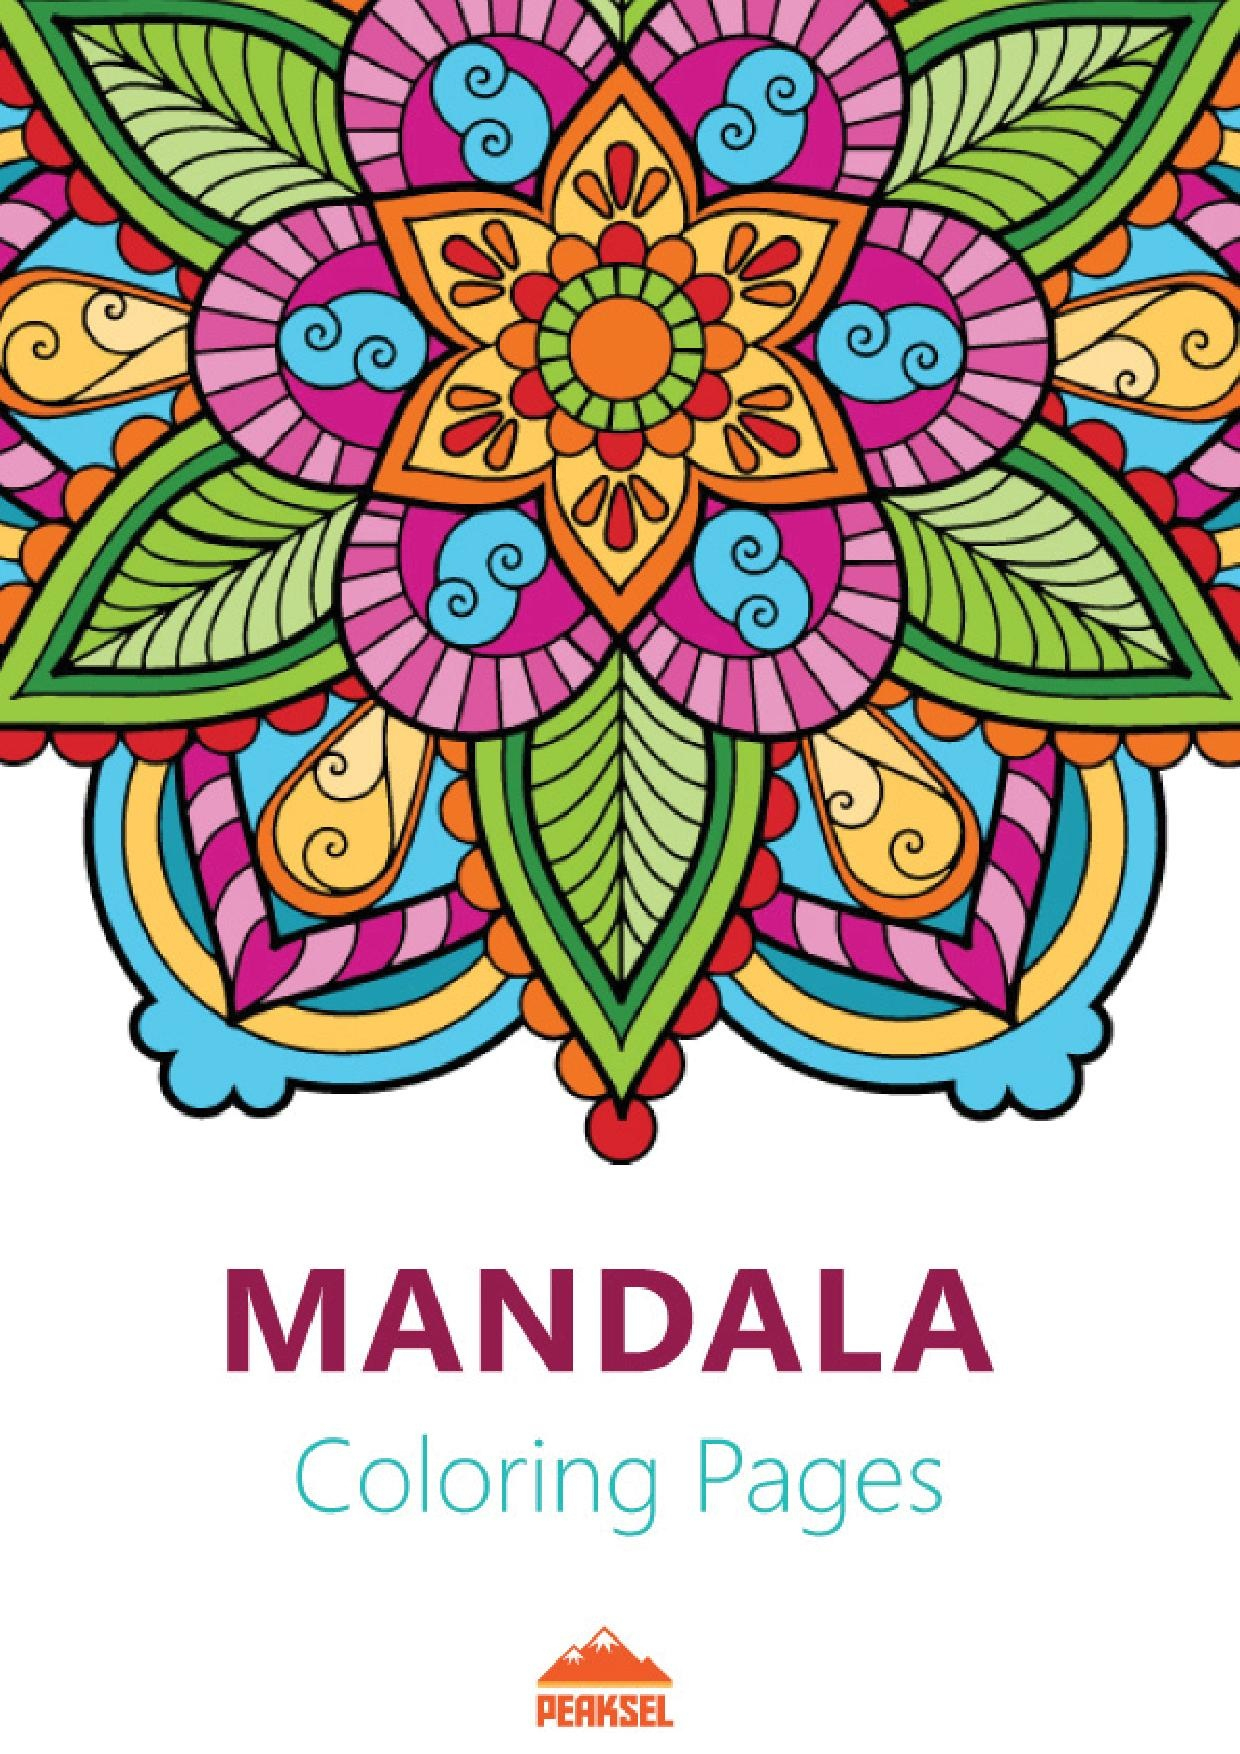 File:mandala Coloring Pages For Adults - Printable Coloring Book.pdf - Free Printable Mandalas Pdf